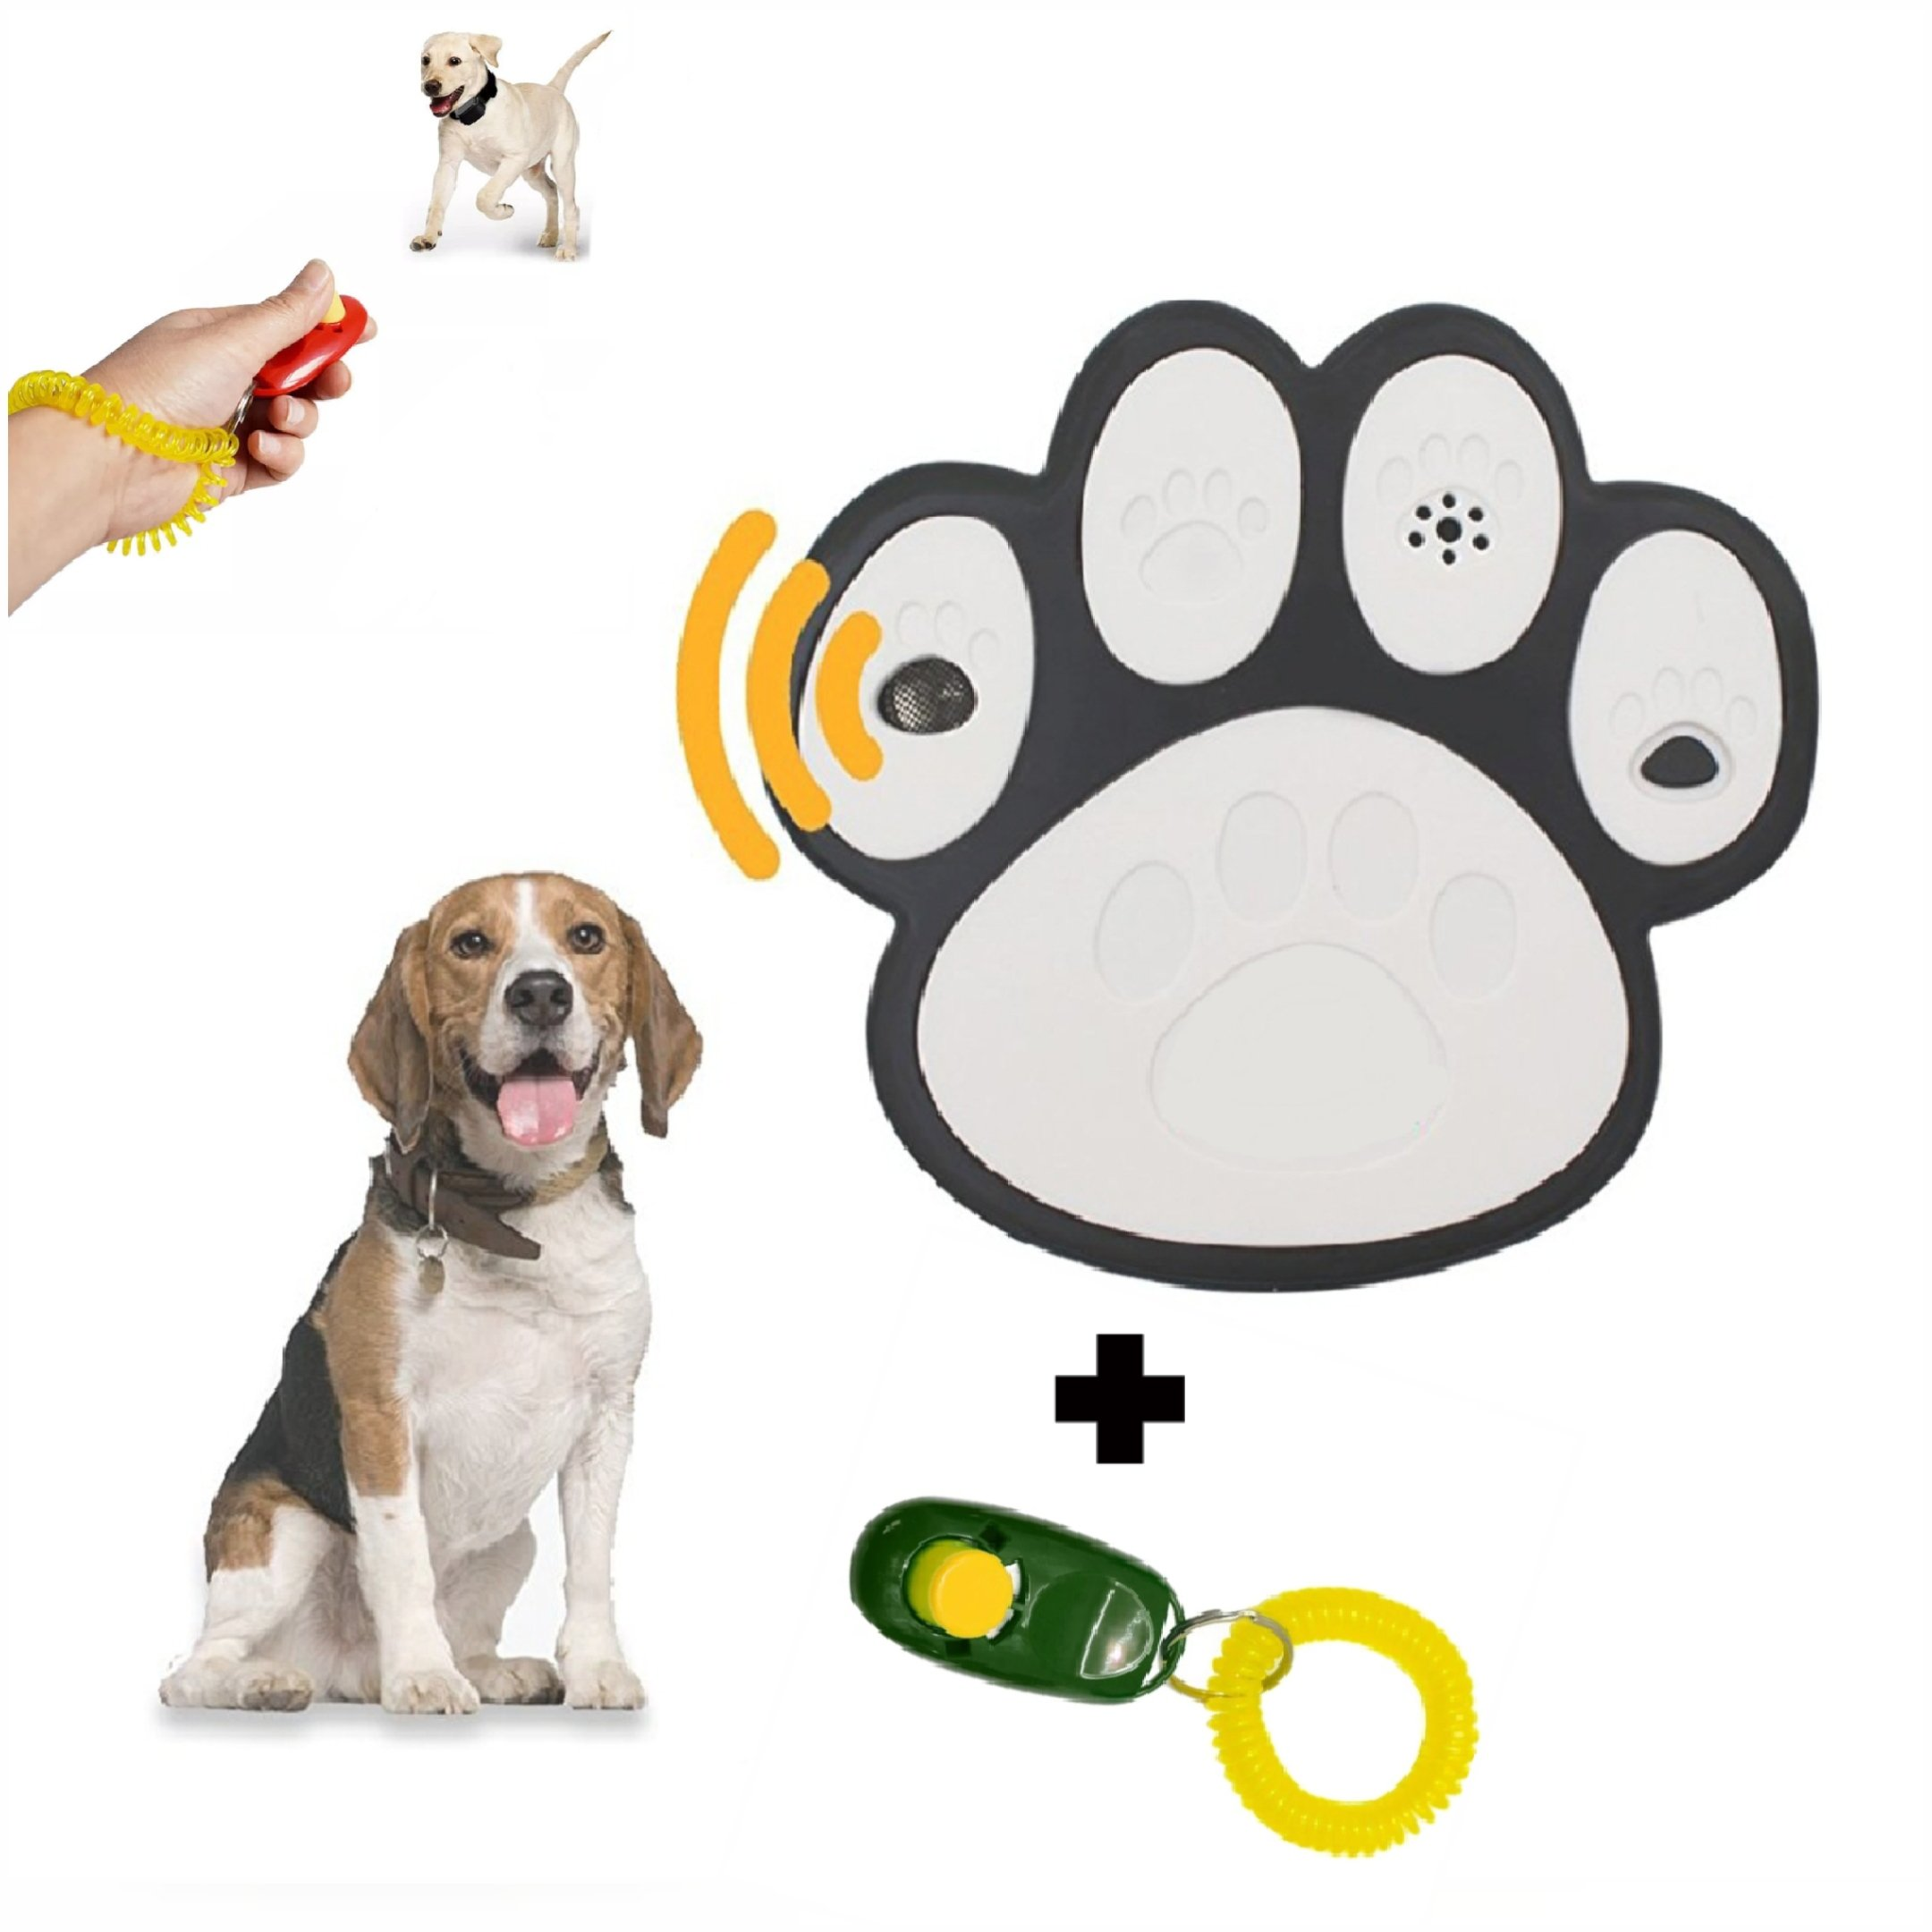 CoLnyC (Newest Model) Ultrasonic Paw Shaped Mini Outdoor Anti Barking Deterrent | No Bark | Stop Dog | Sonic Devices | Training Device With Free Clicker Dog